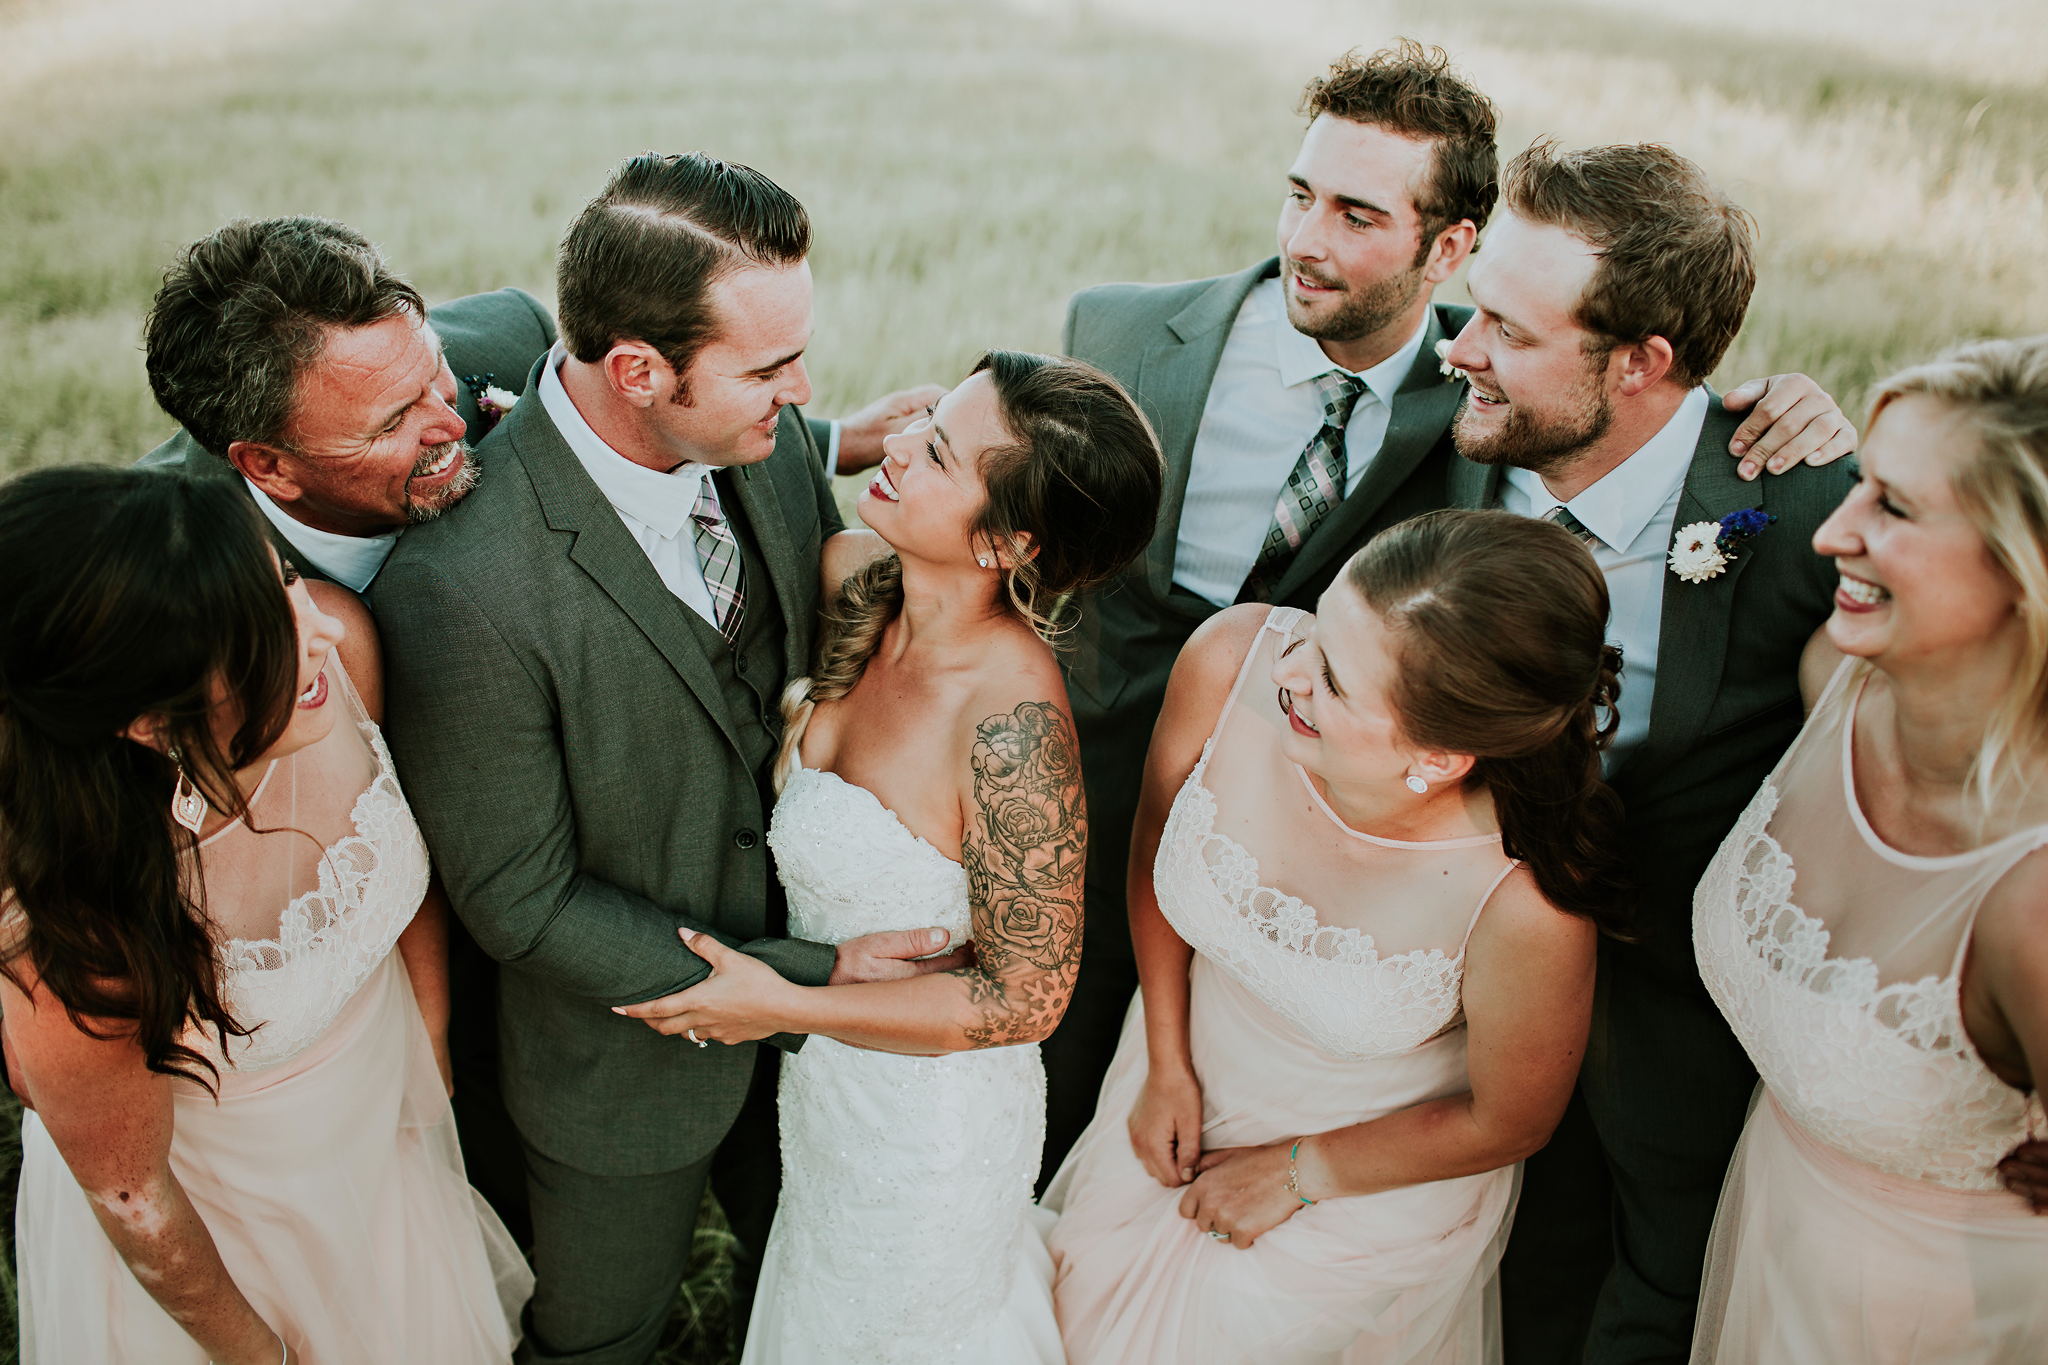 Wedding Party all enjoying a moment between the bride and groom.    photo by: TGTB COLLECTIVE  Tacoma wedding photographers  rustic barn wedding / PNW